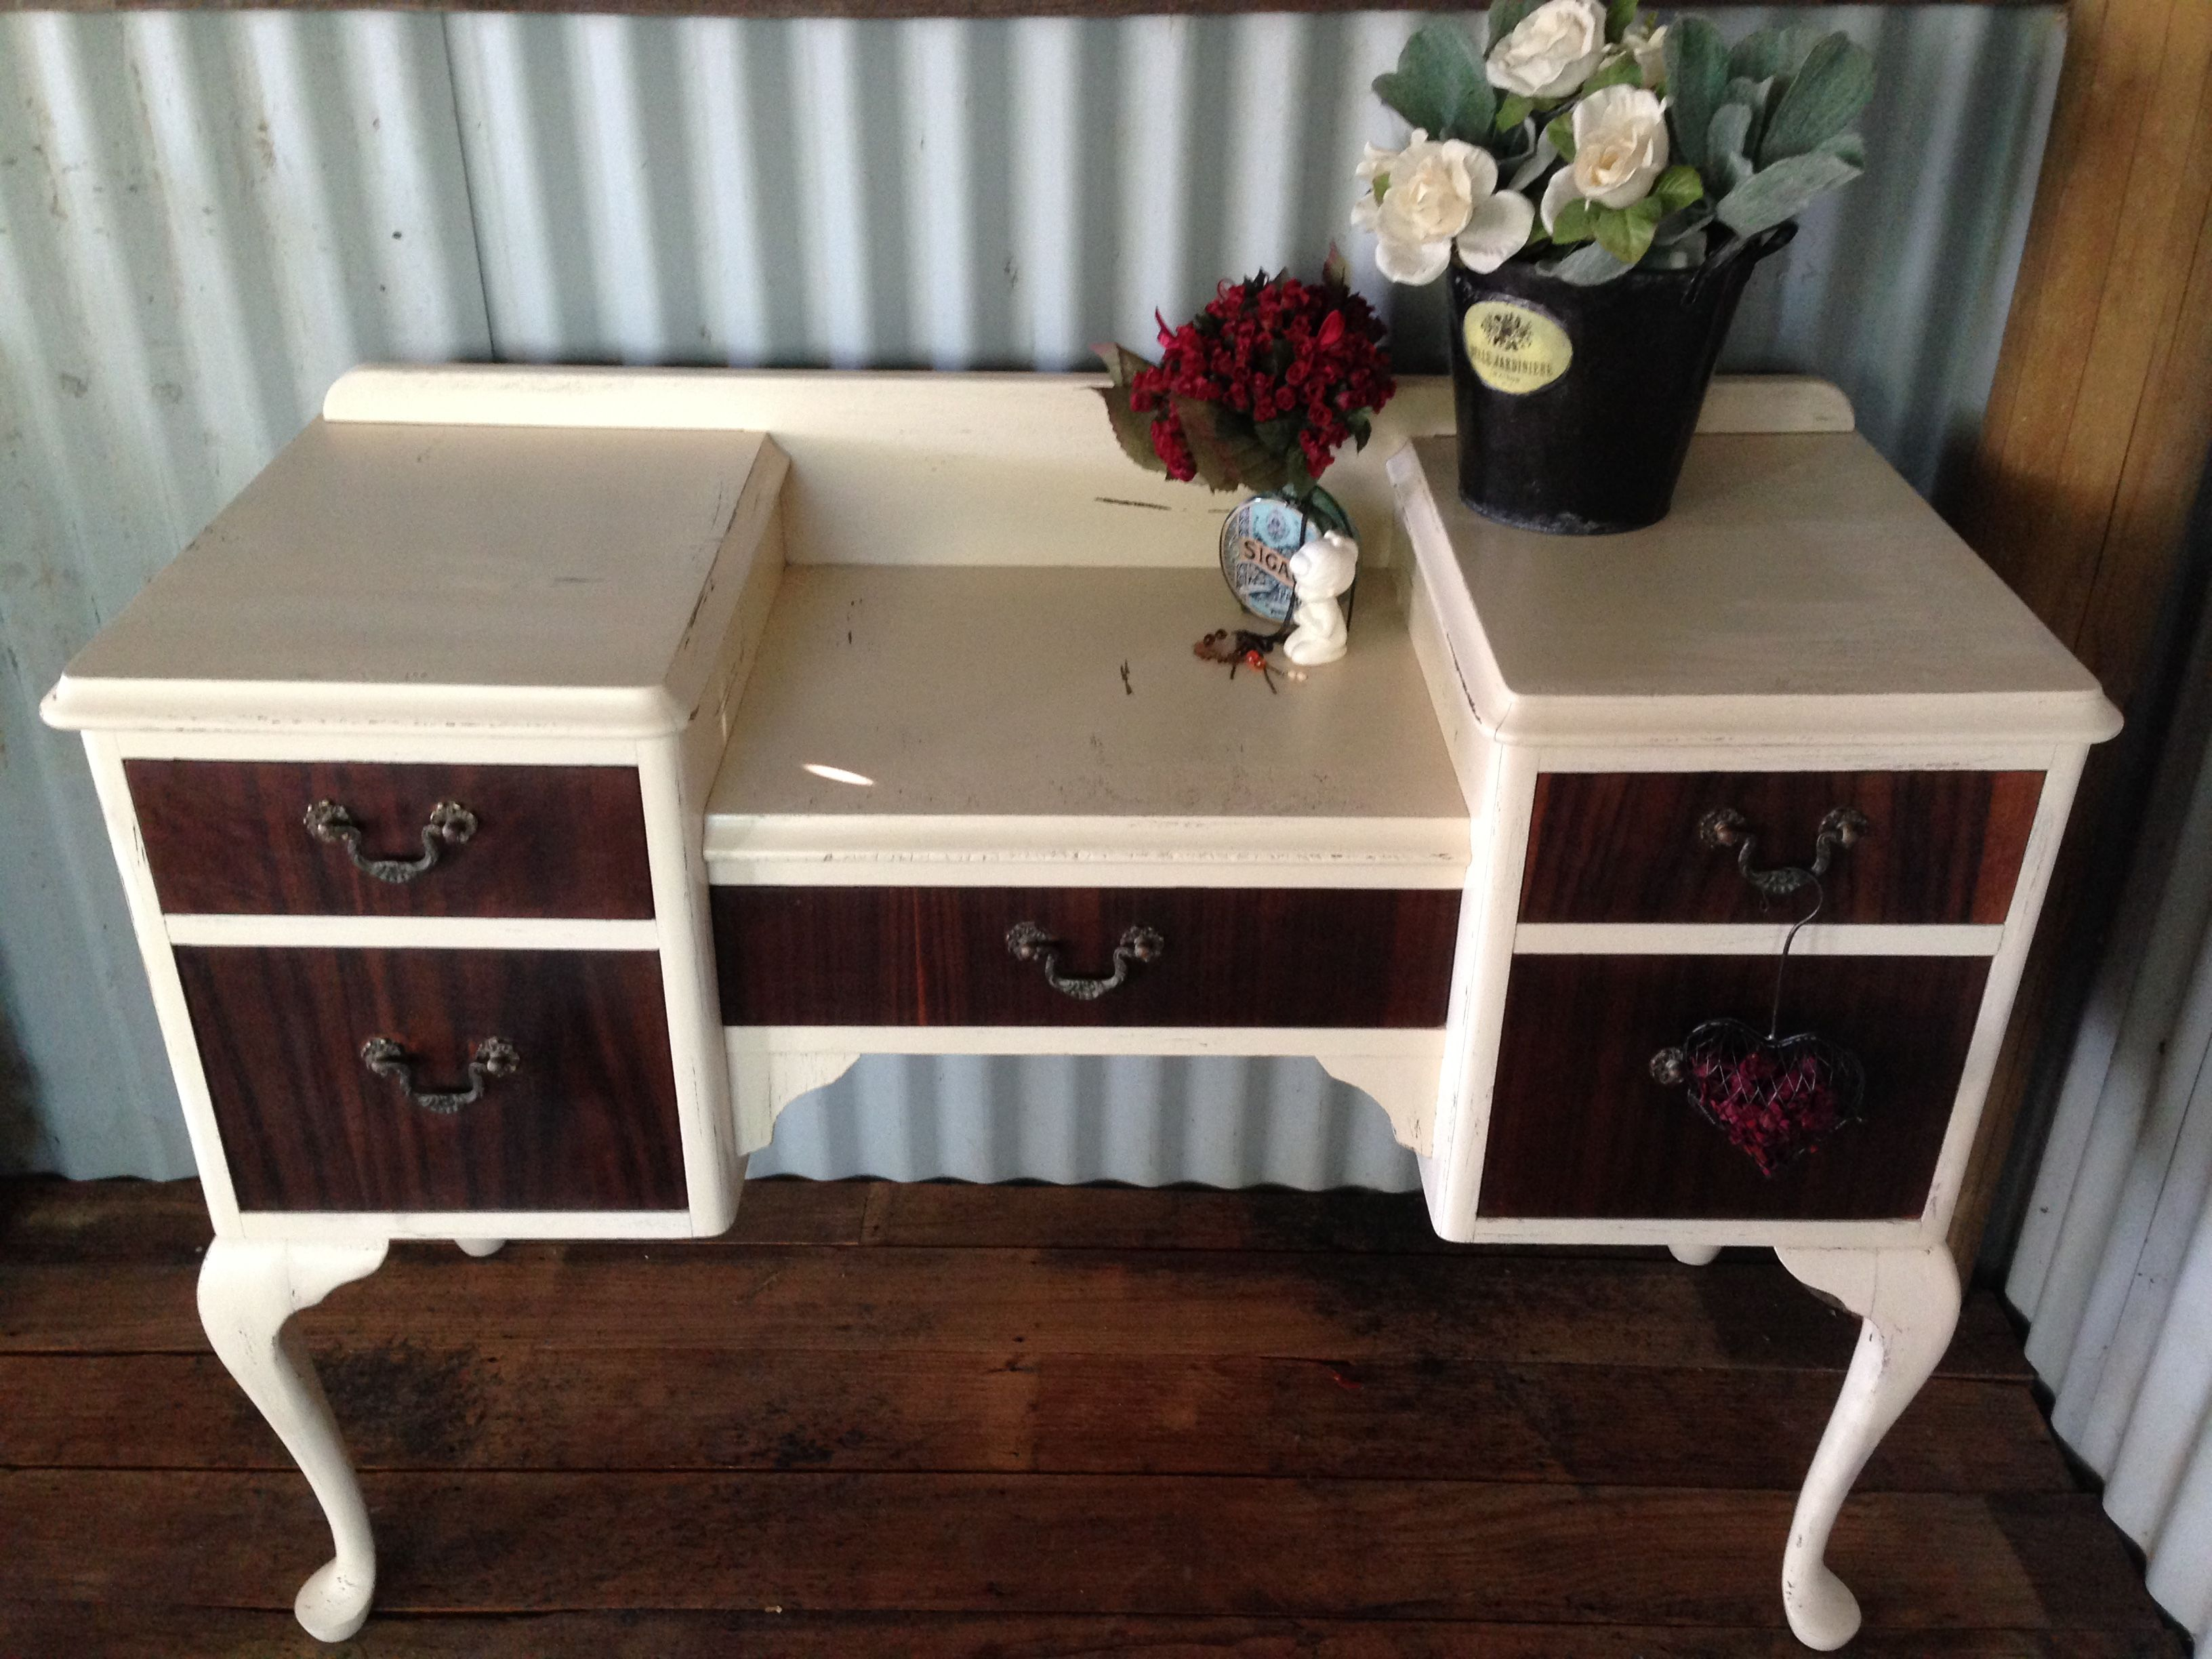 Shabby chic dresser with cabriole legs $160 More furnitur available @ www.facebook.com/groups/VintageReclaimed